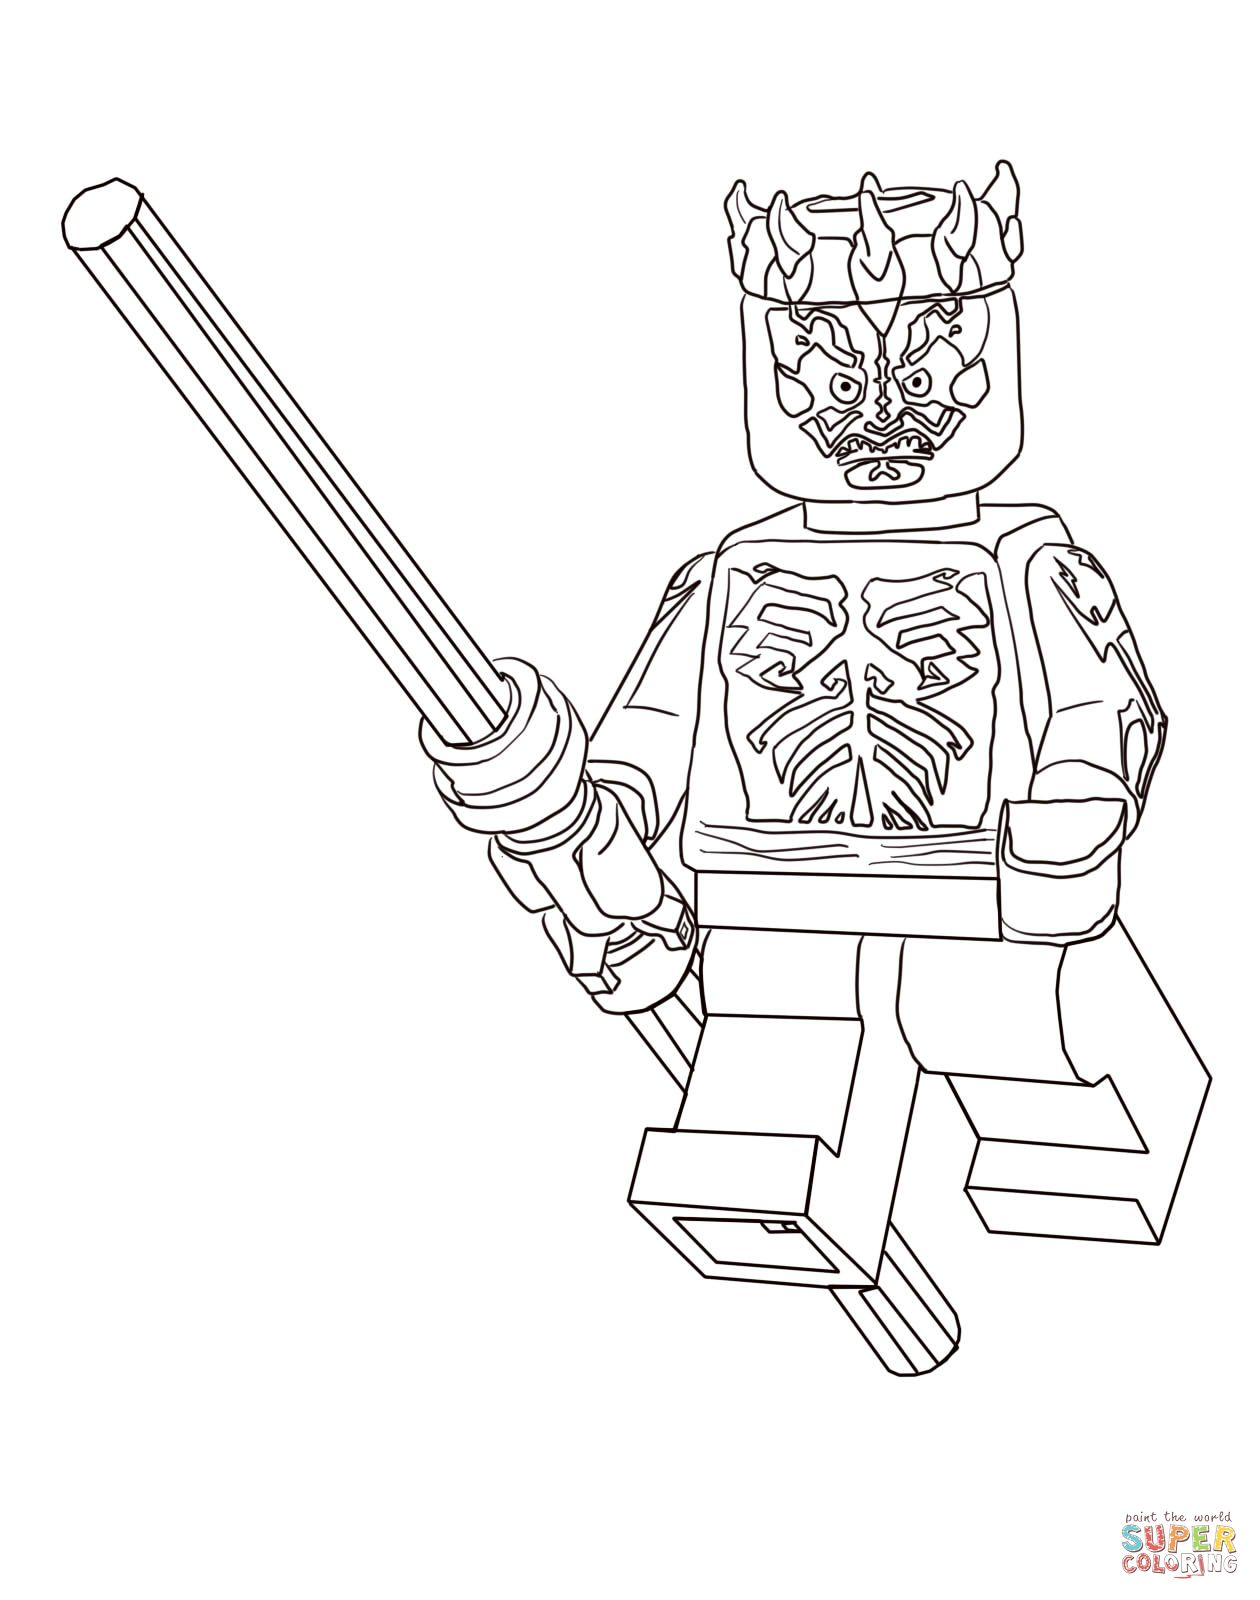 lego darth maul coloring page | Star Wars Party | Pinterest